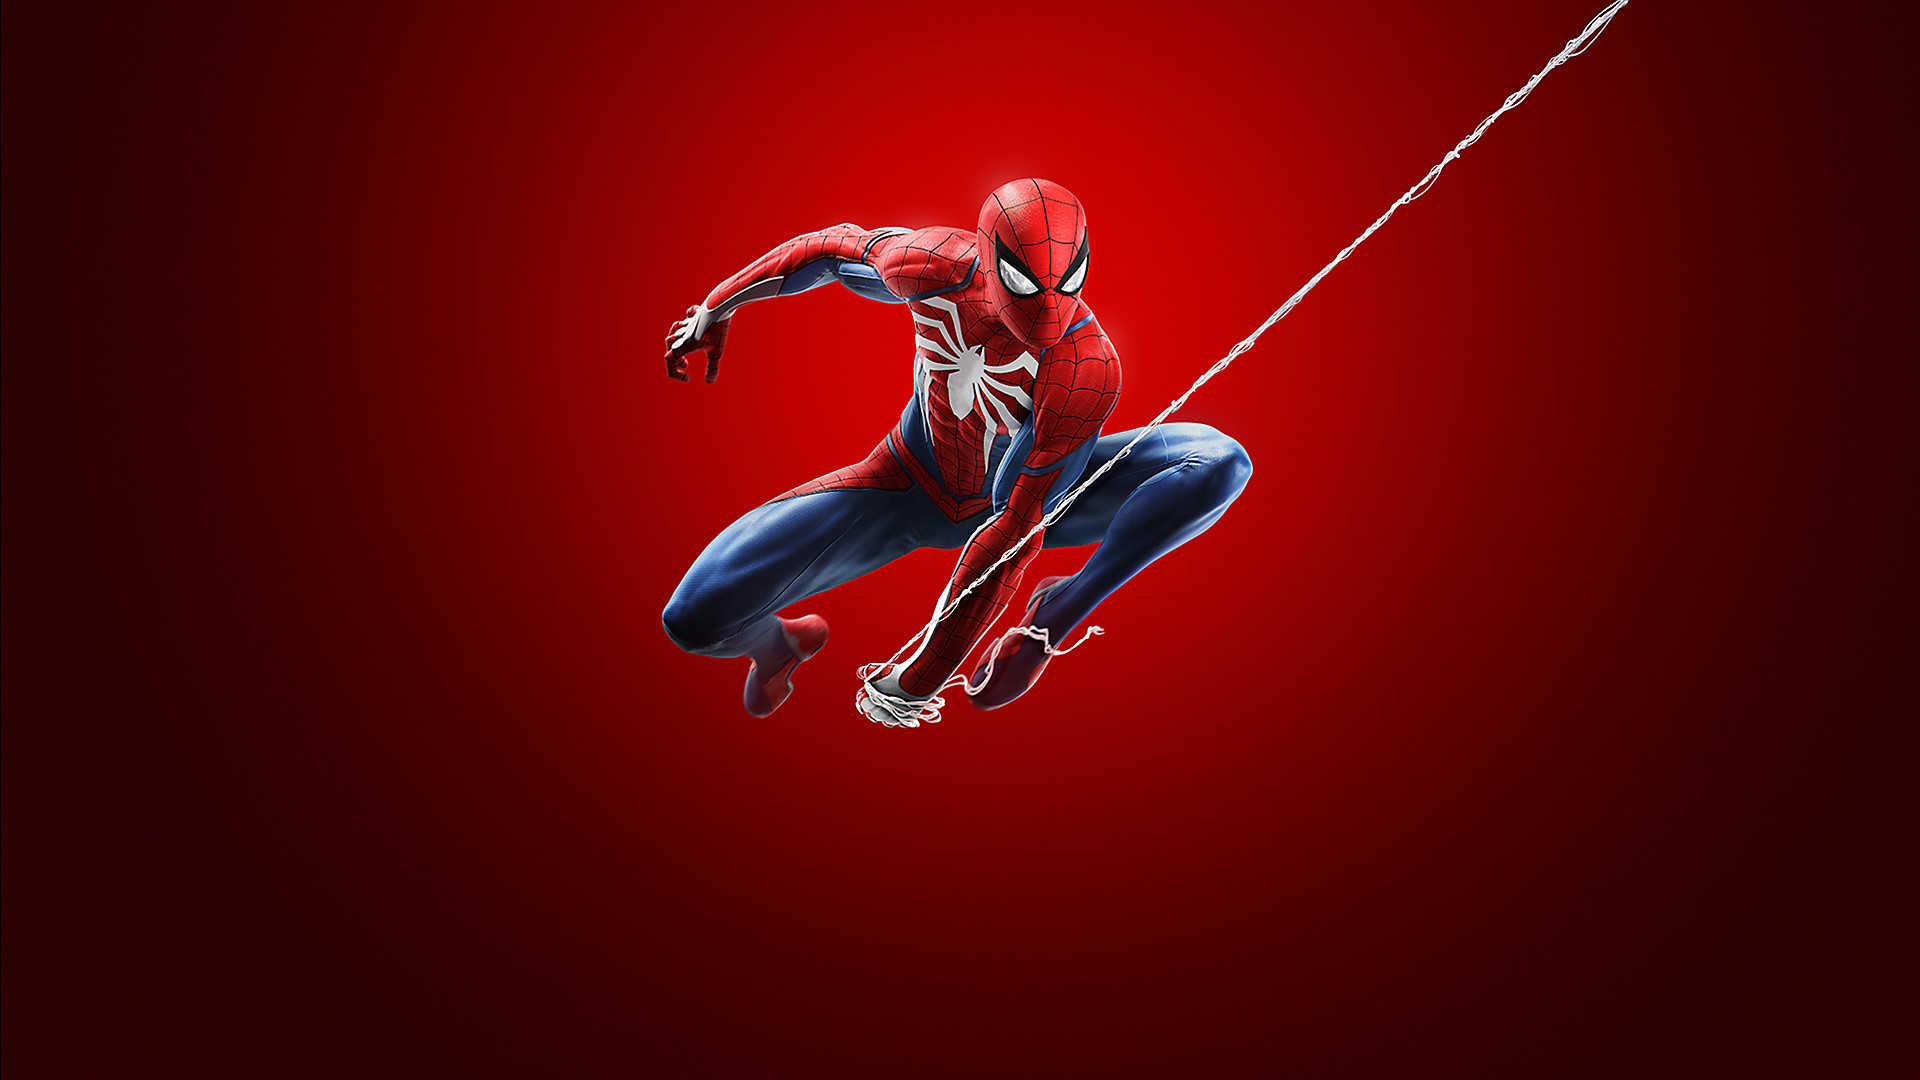 Spiderman 2018 - RYZIN Provided asset support for Insomniac teams for Spiderman 2018COMING SOON (UNDER NDA)